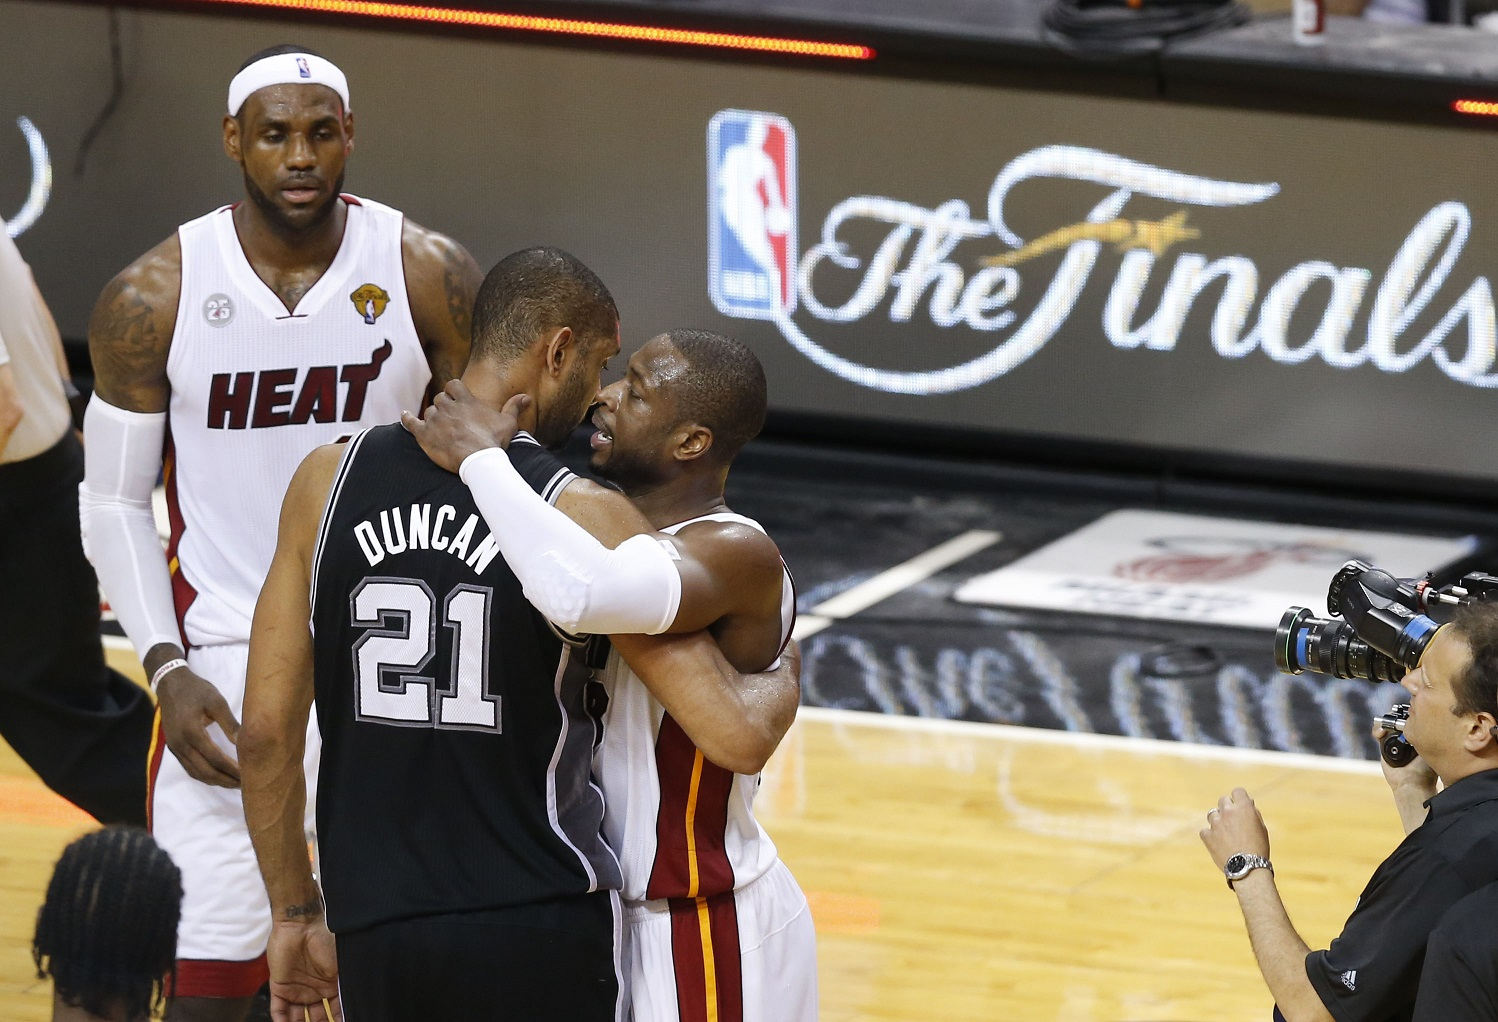 2014 NBA Finals preview, schedule: San Antonio Spurs vs. Miami Heat